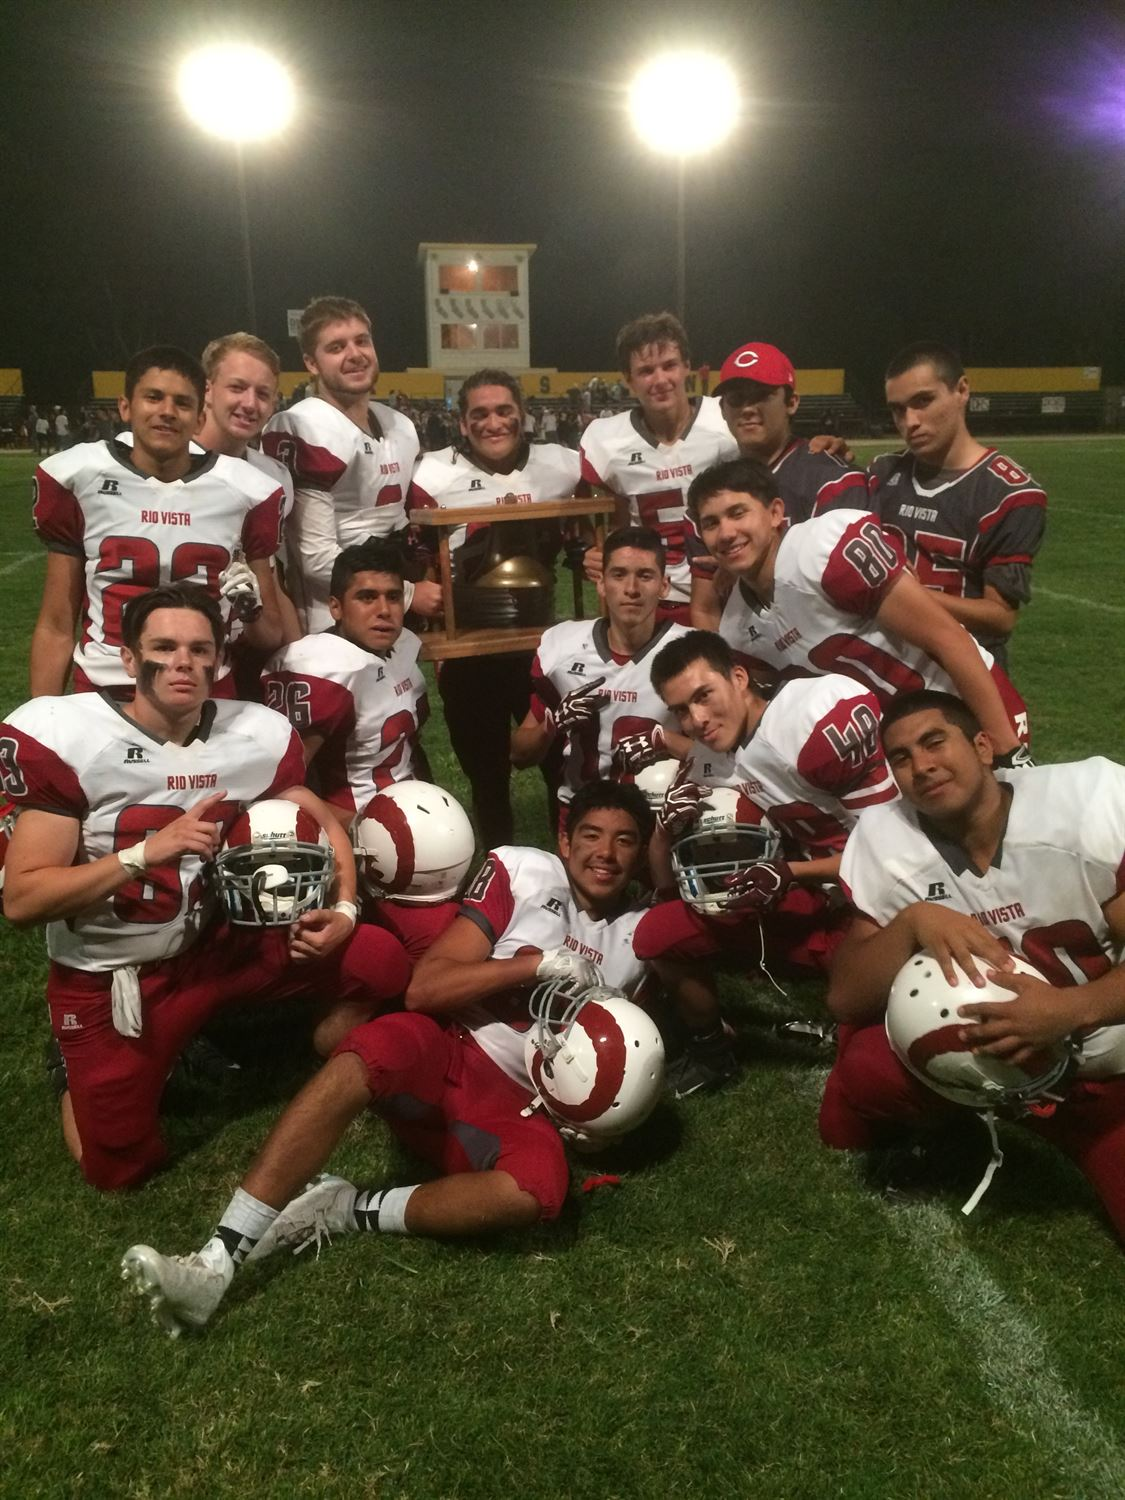 Rio Vista High School - Boys' Varsity Football